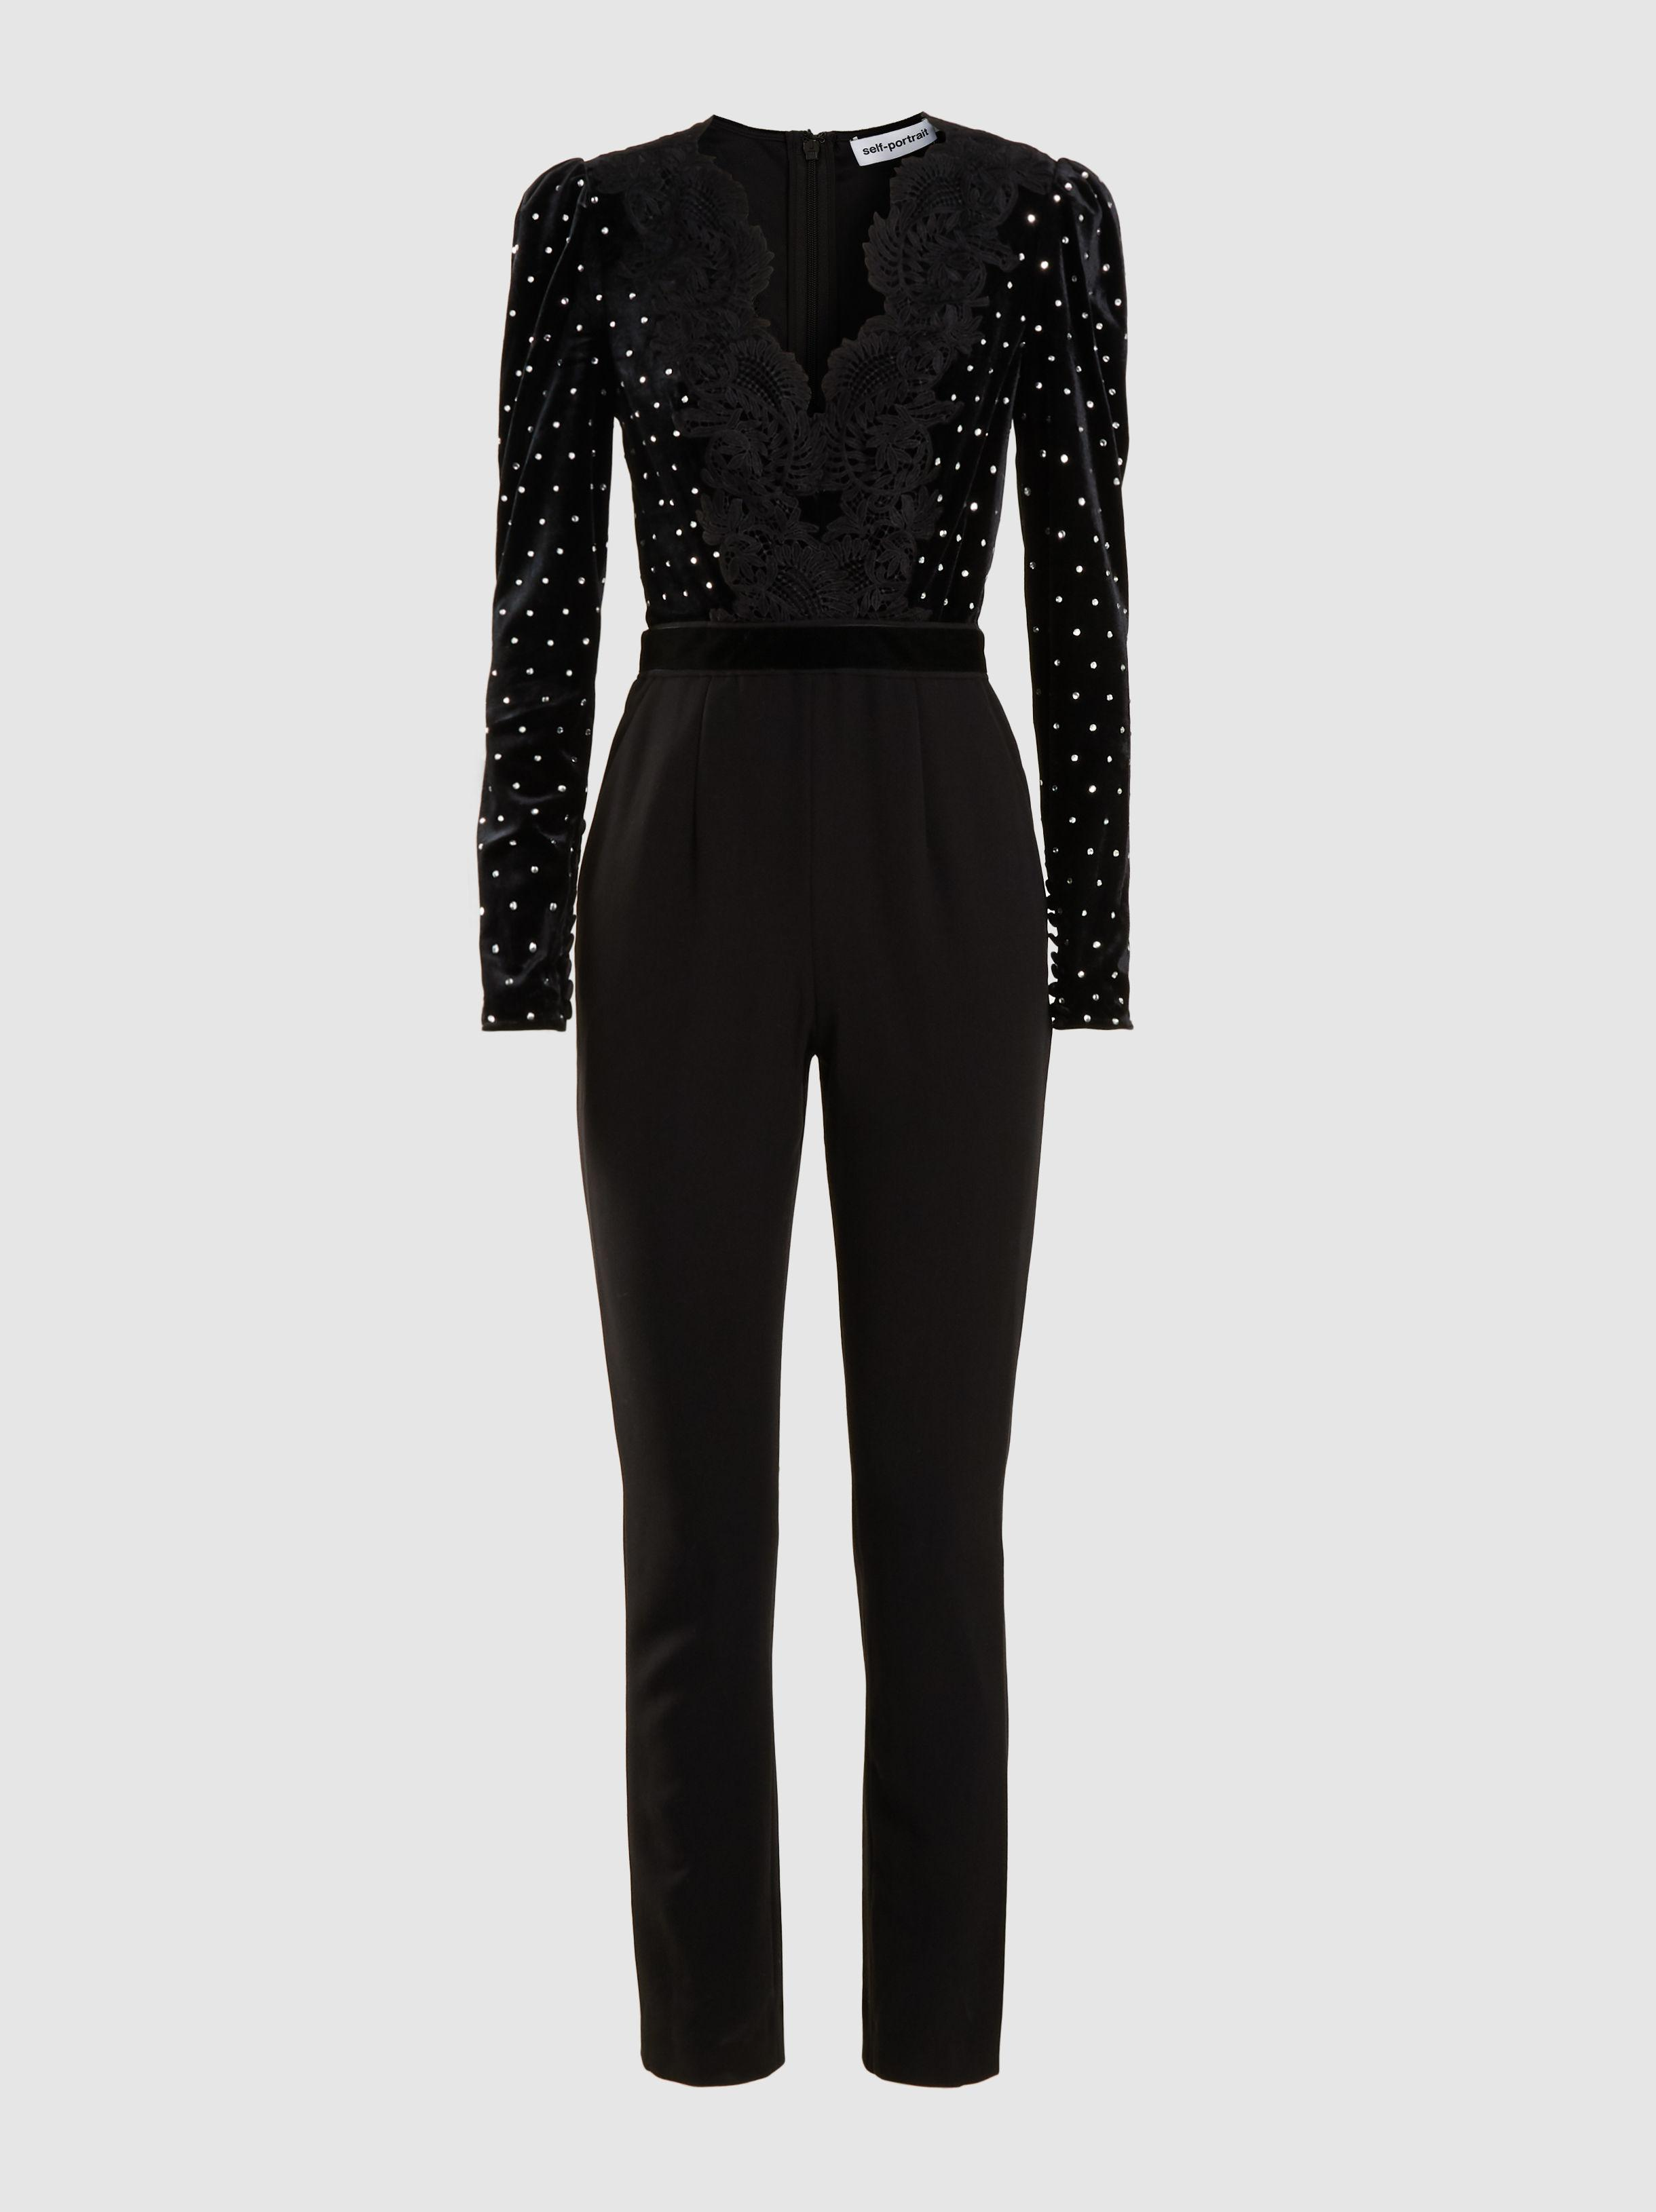 9e909bc988fa Lyst - Self-Portrait Jumpsuit With Crystals And Lace in Black - Save 16%